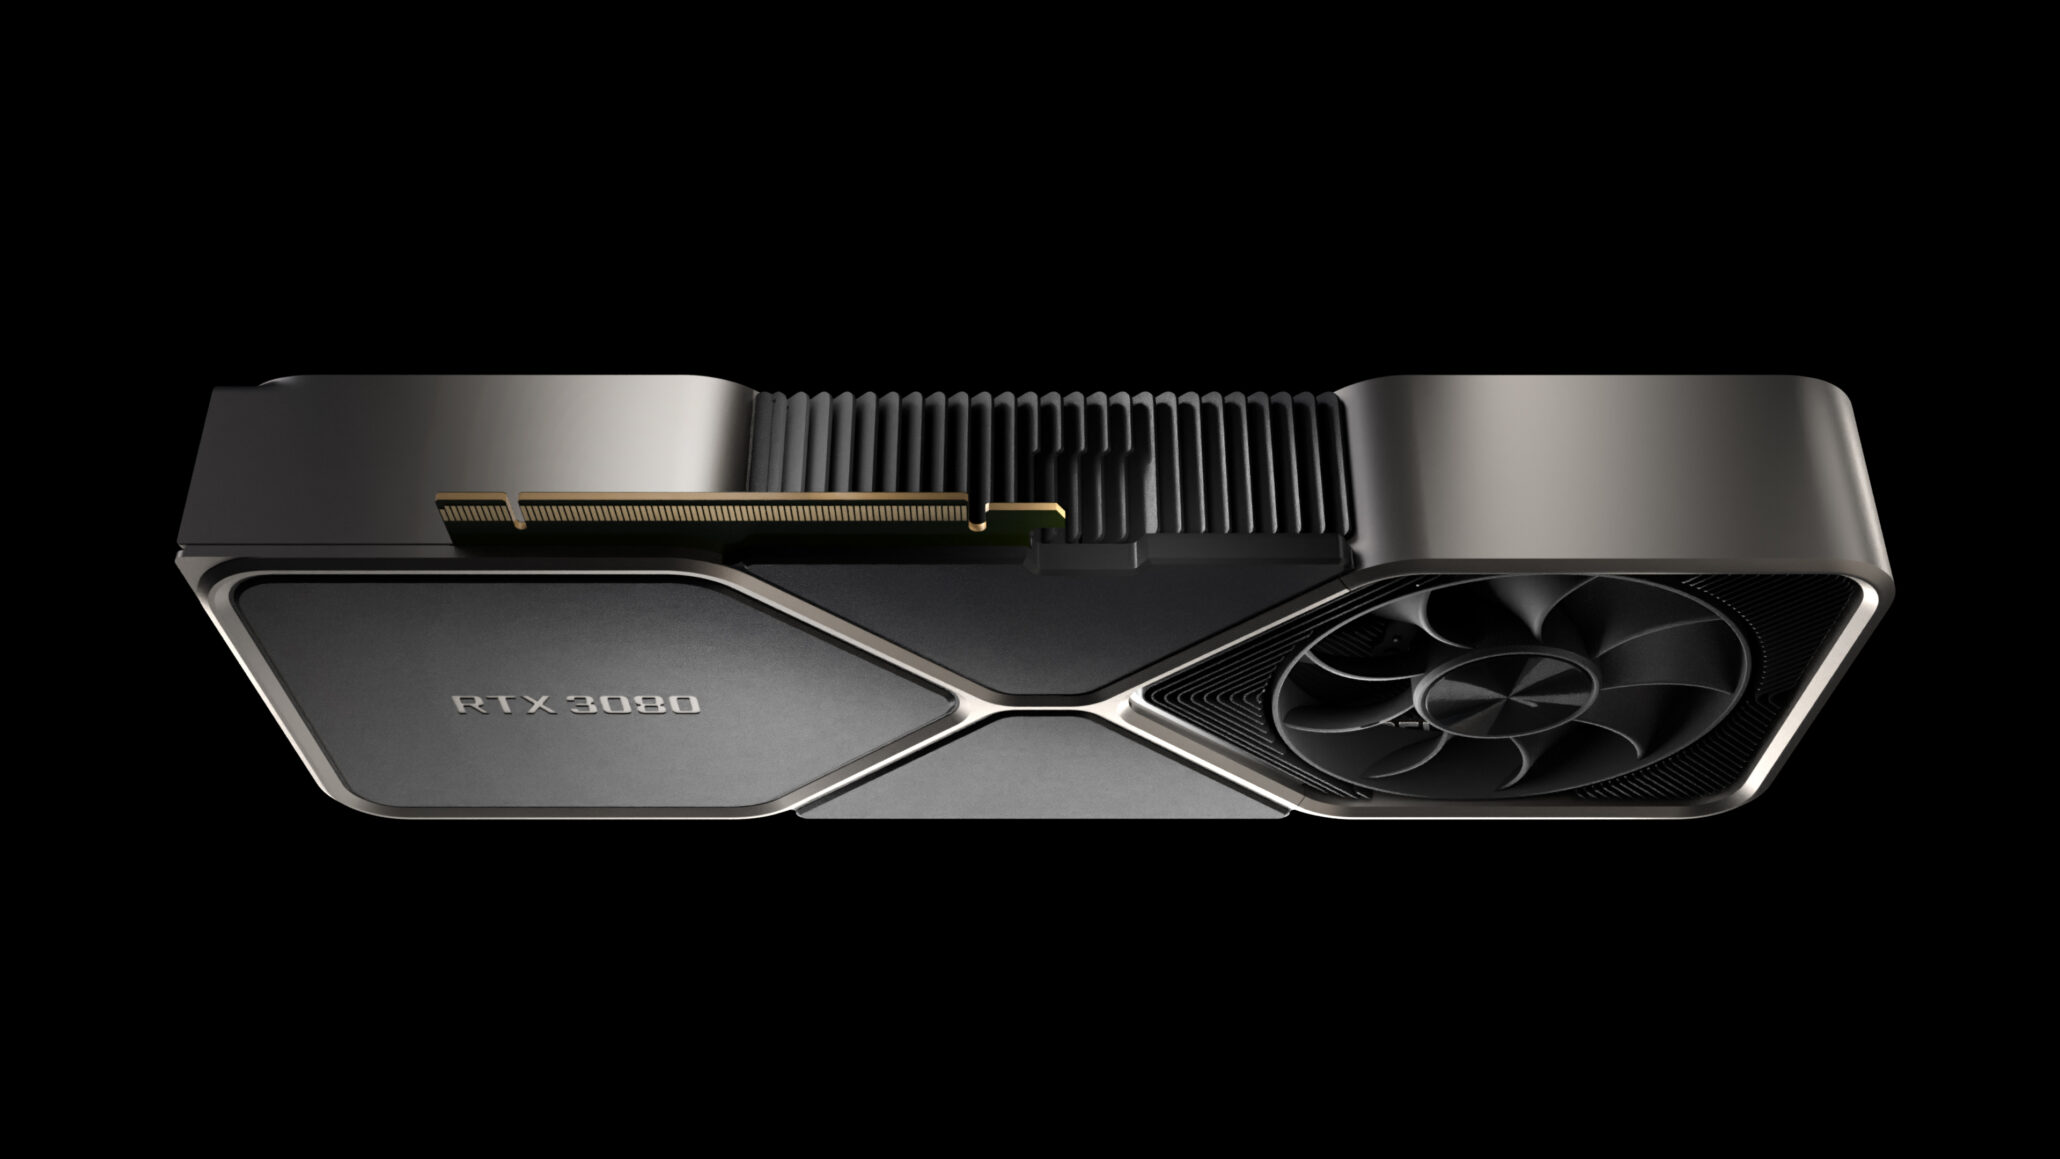 geforce-rtx-3080-product-gallery-full-screen-3840-1